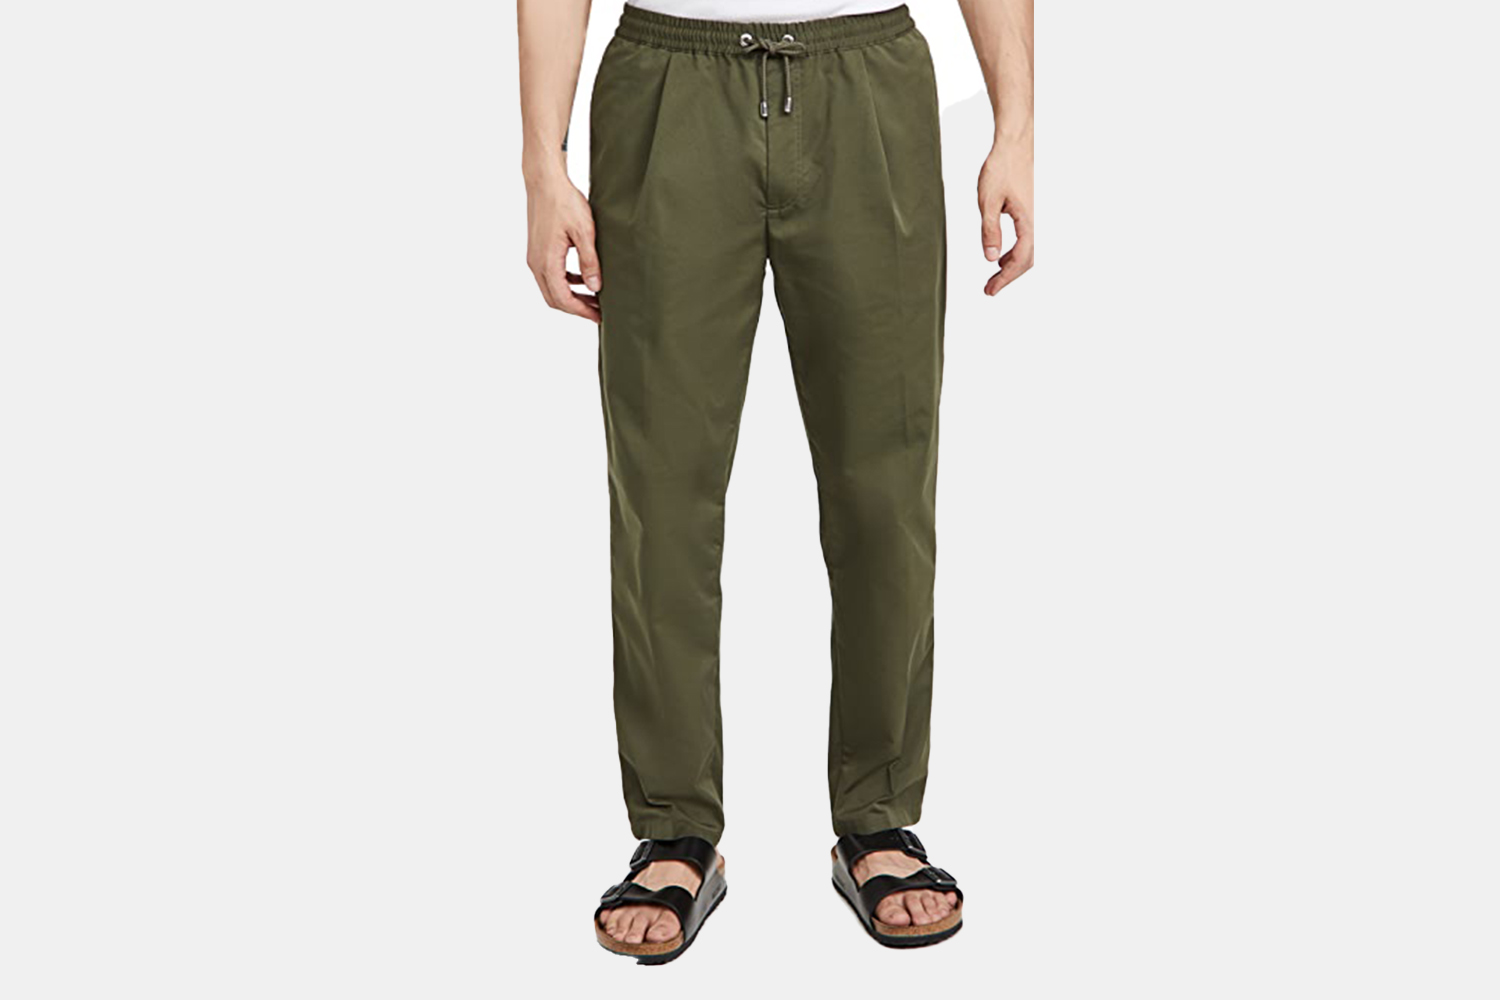 a pair of olive green, relaxed pants.